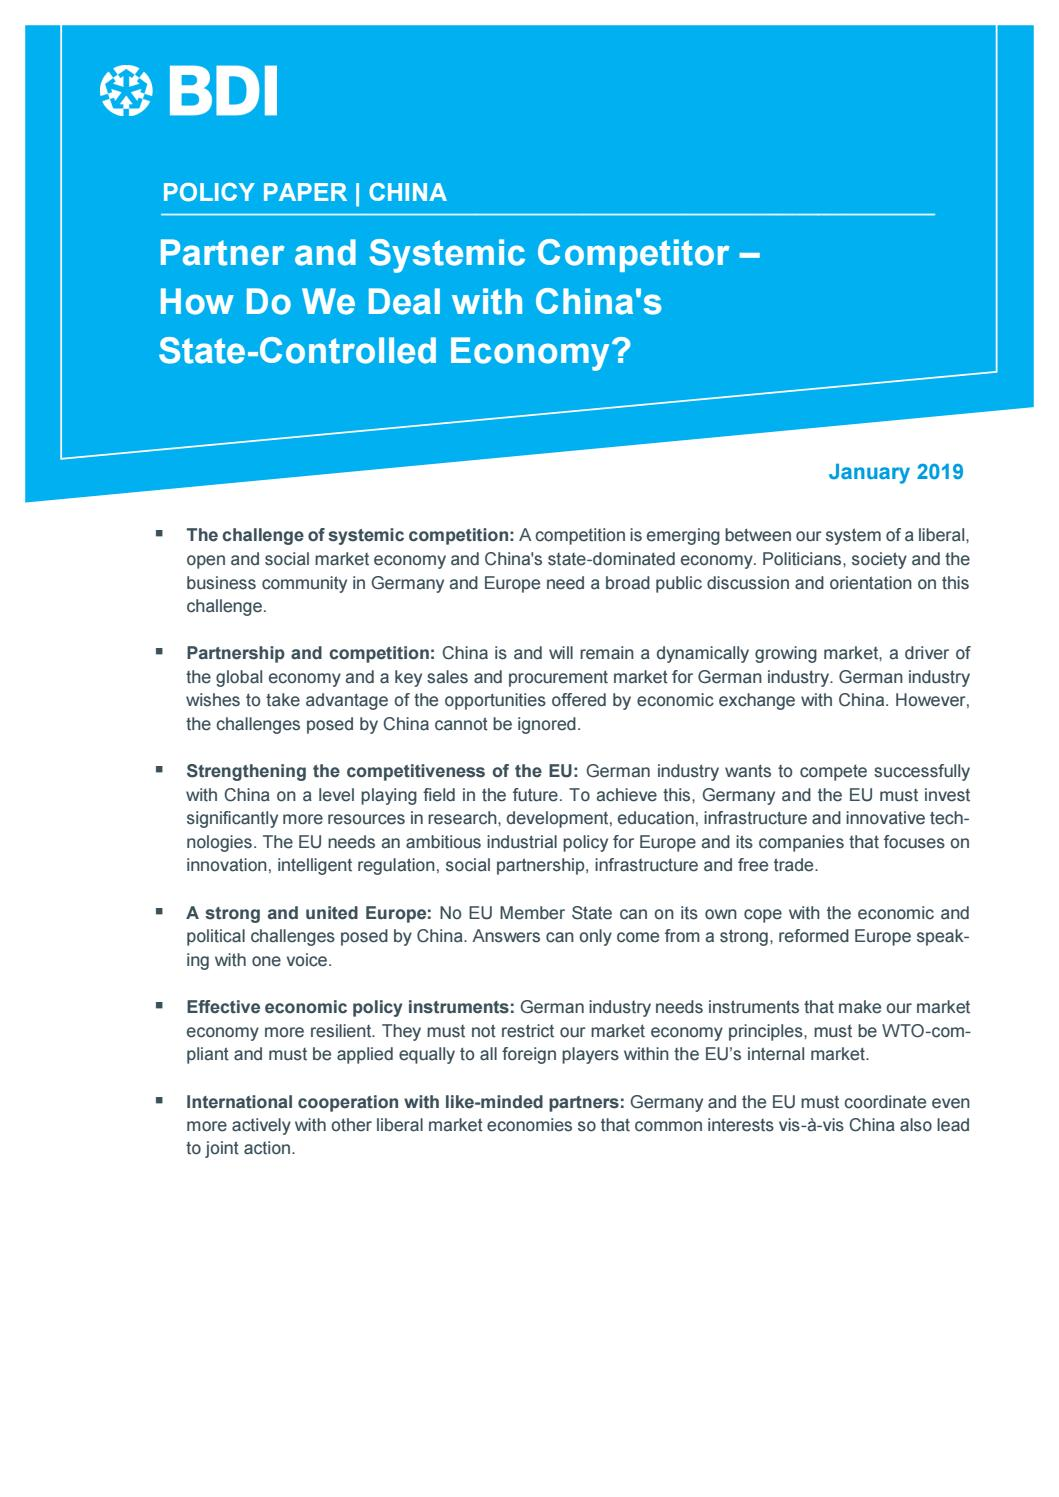 China – Partner and Systemic Competitor by Bundesverband der